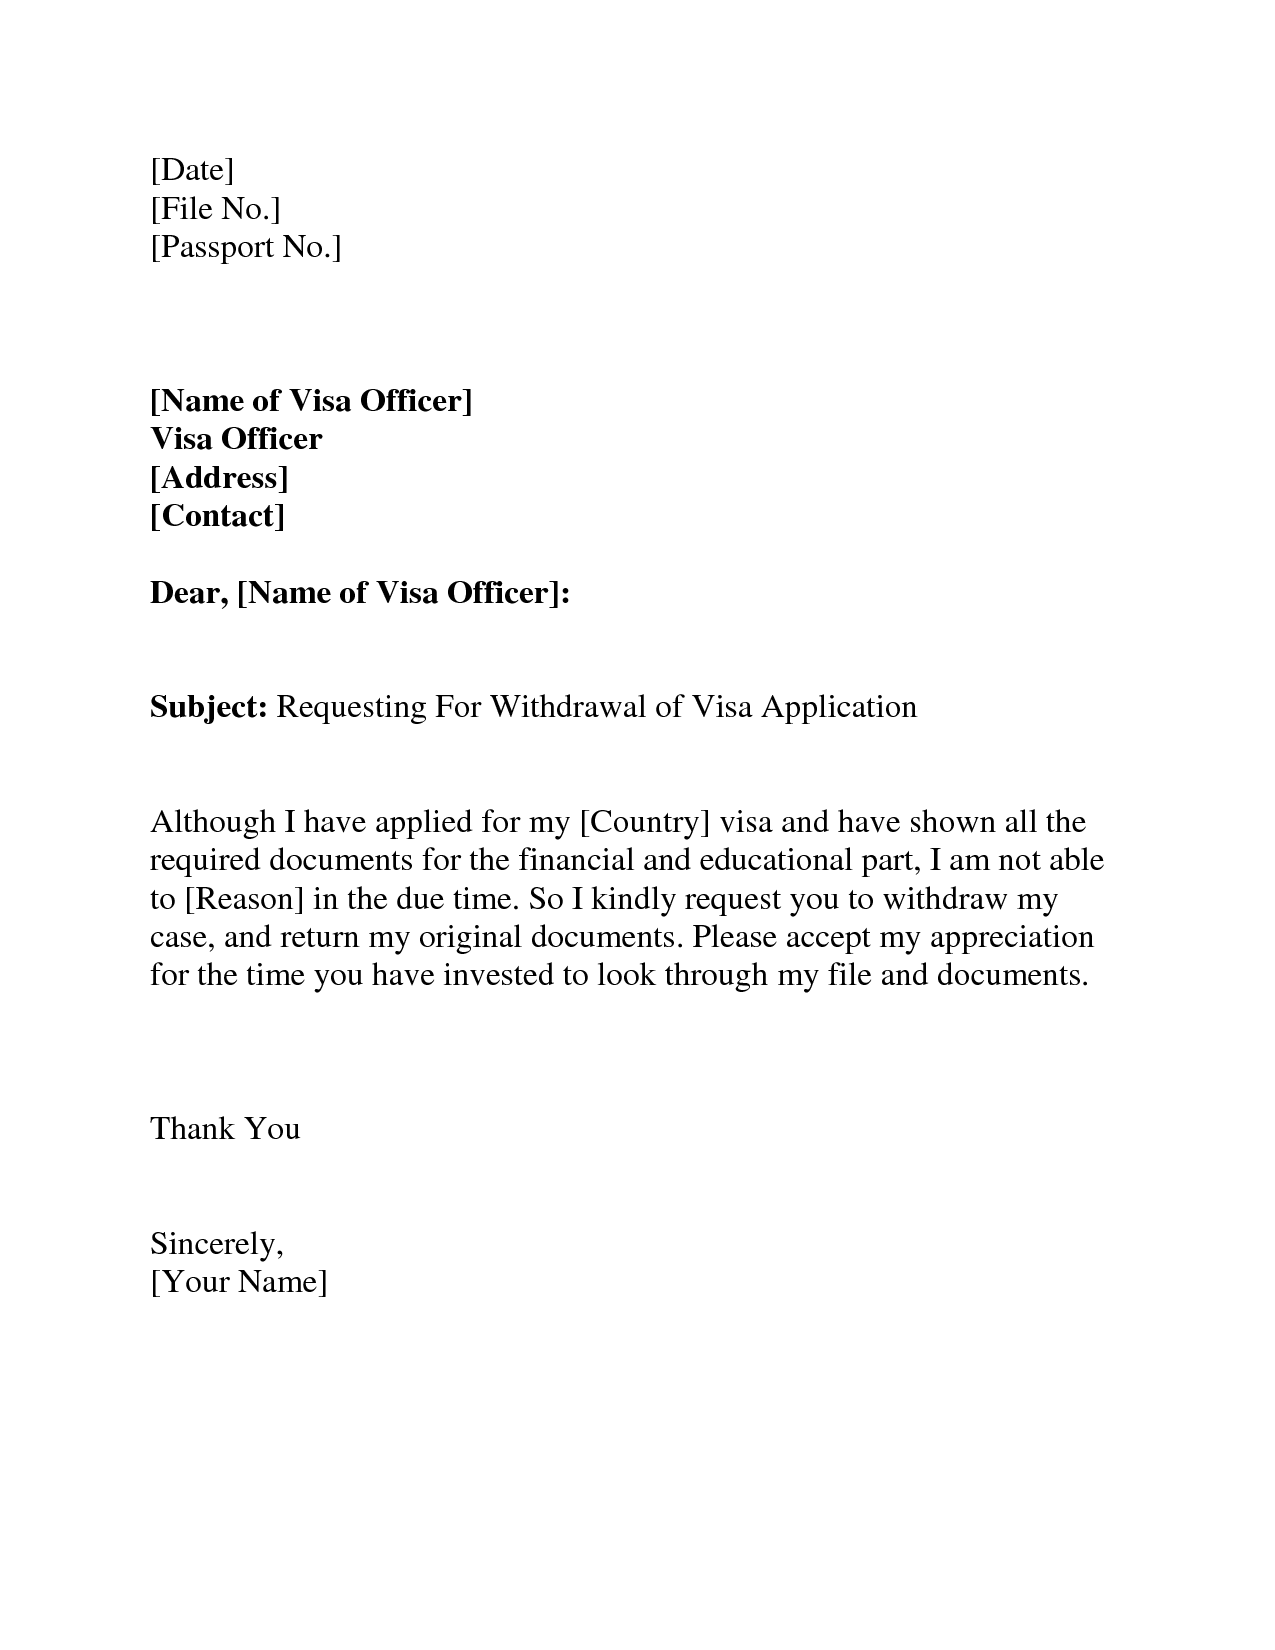 Visa Withdrawal Letter Request Letter Format Letter And EmailVisa ...